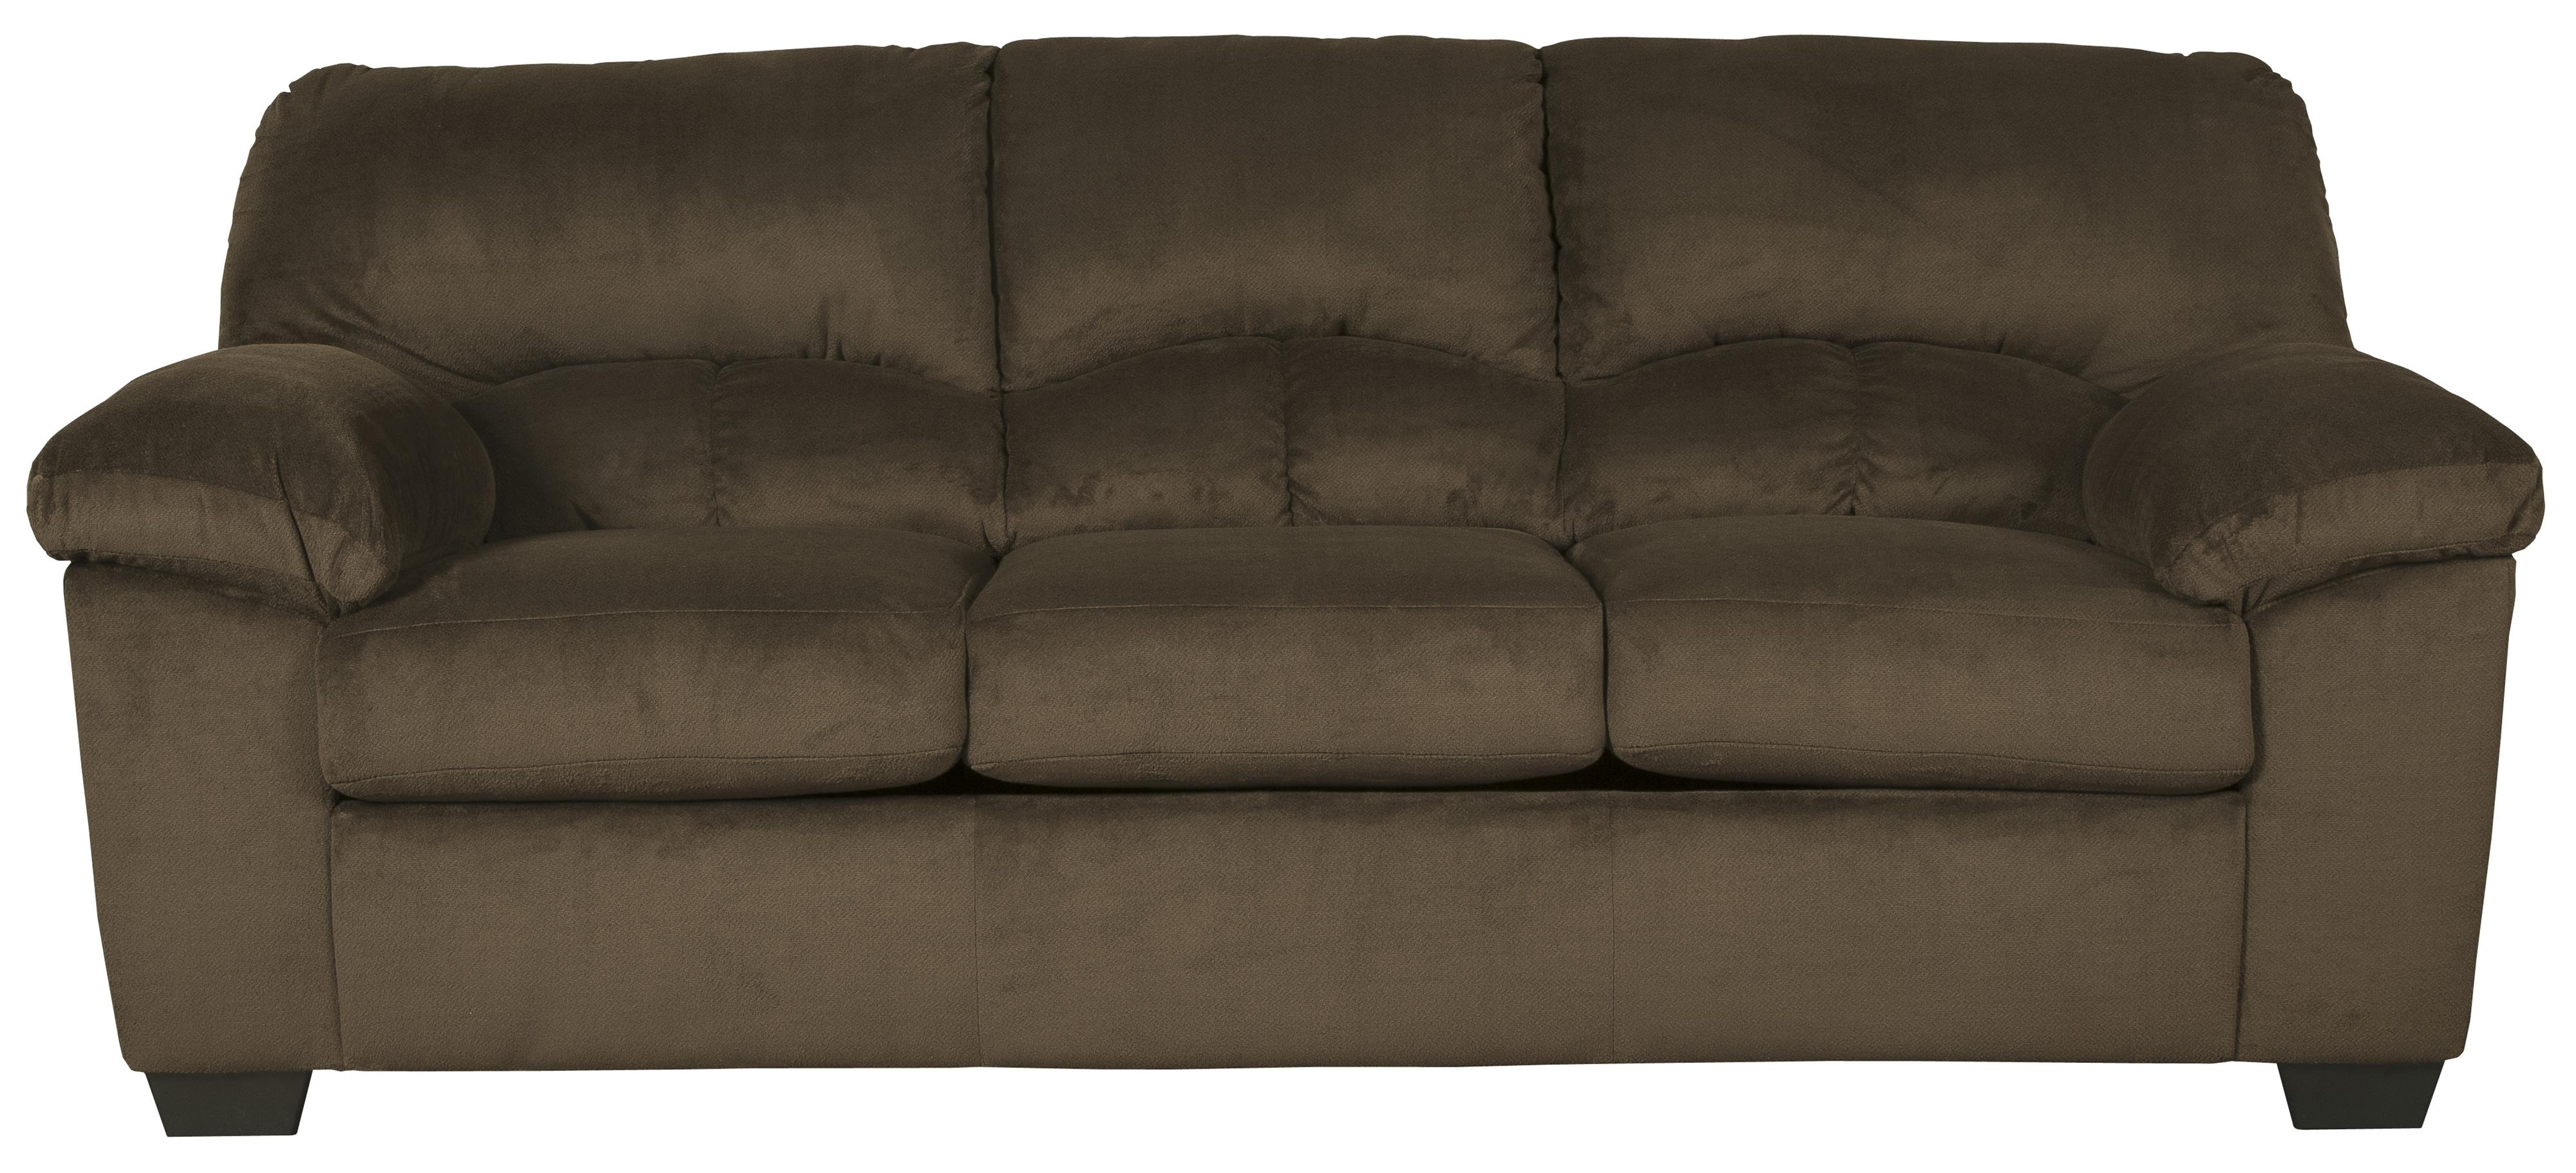 Signature Design By Ashley Dailey 9540338 Casual Contemporary Sofa Furniture And Appliancemart